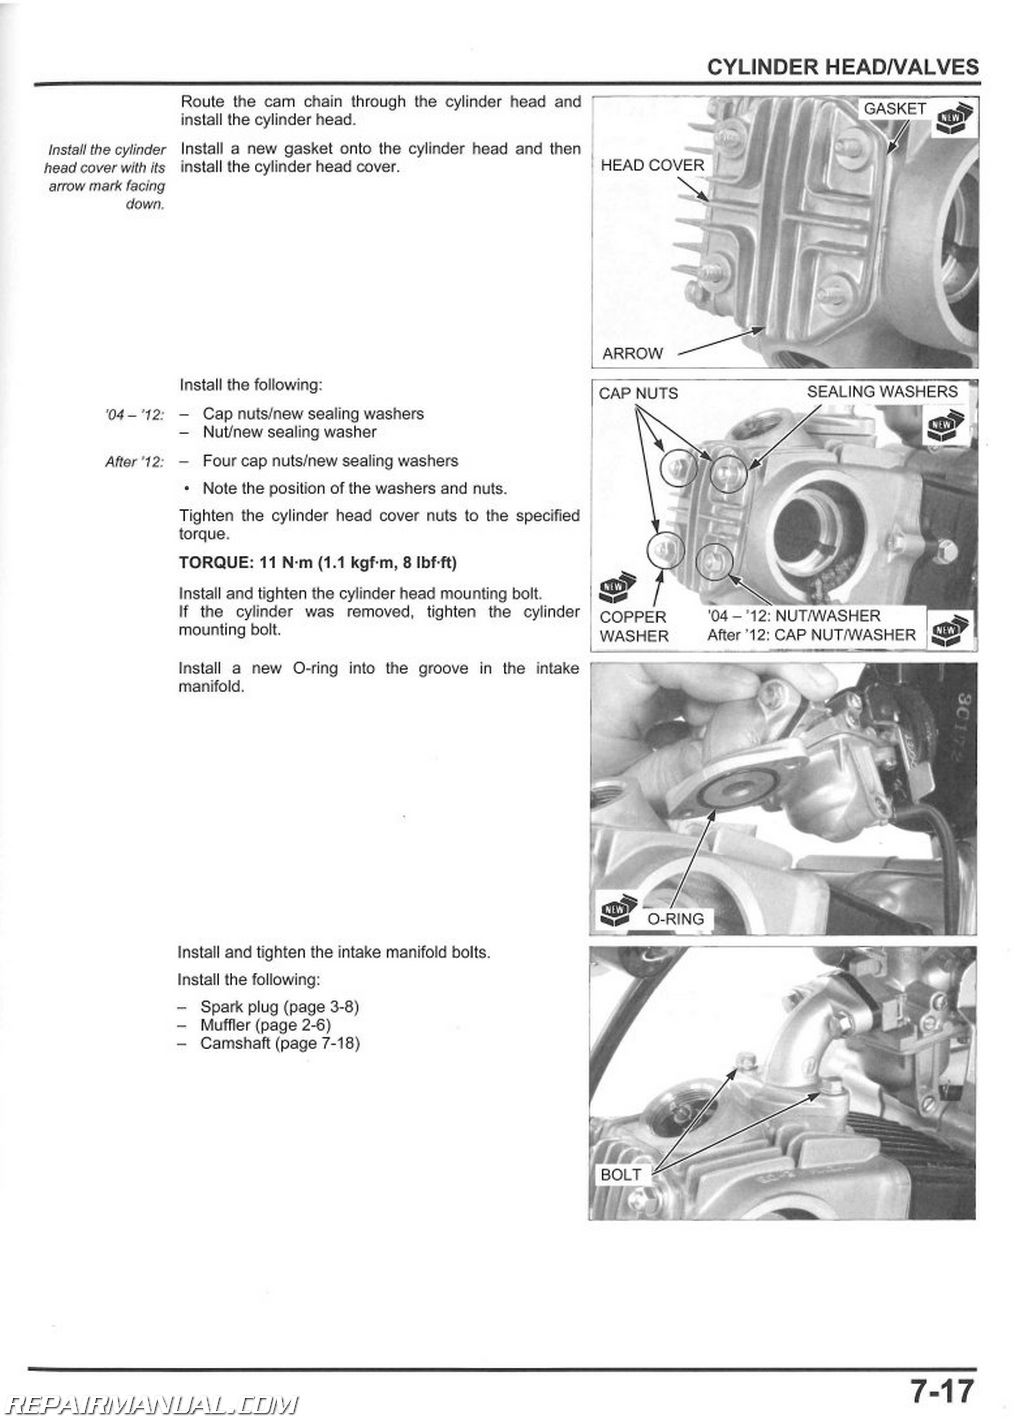 2004 2018 Honda Crf50f Motorcycle Service Manual Cylinder Diagram